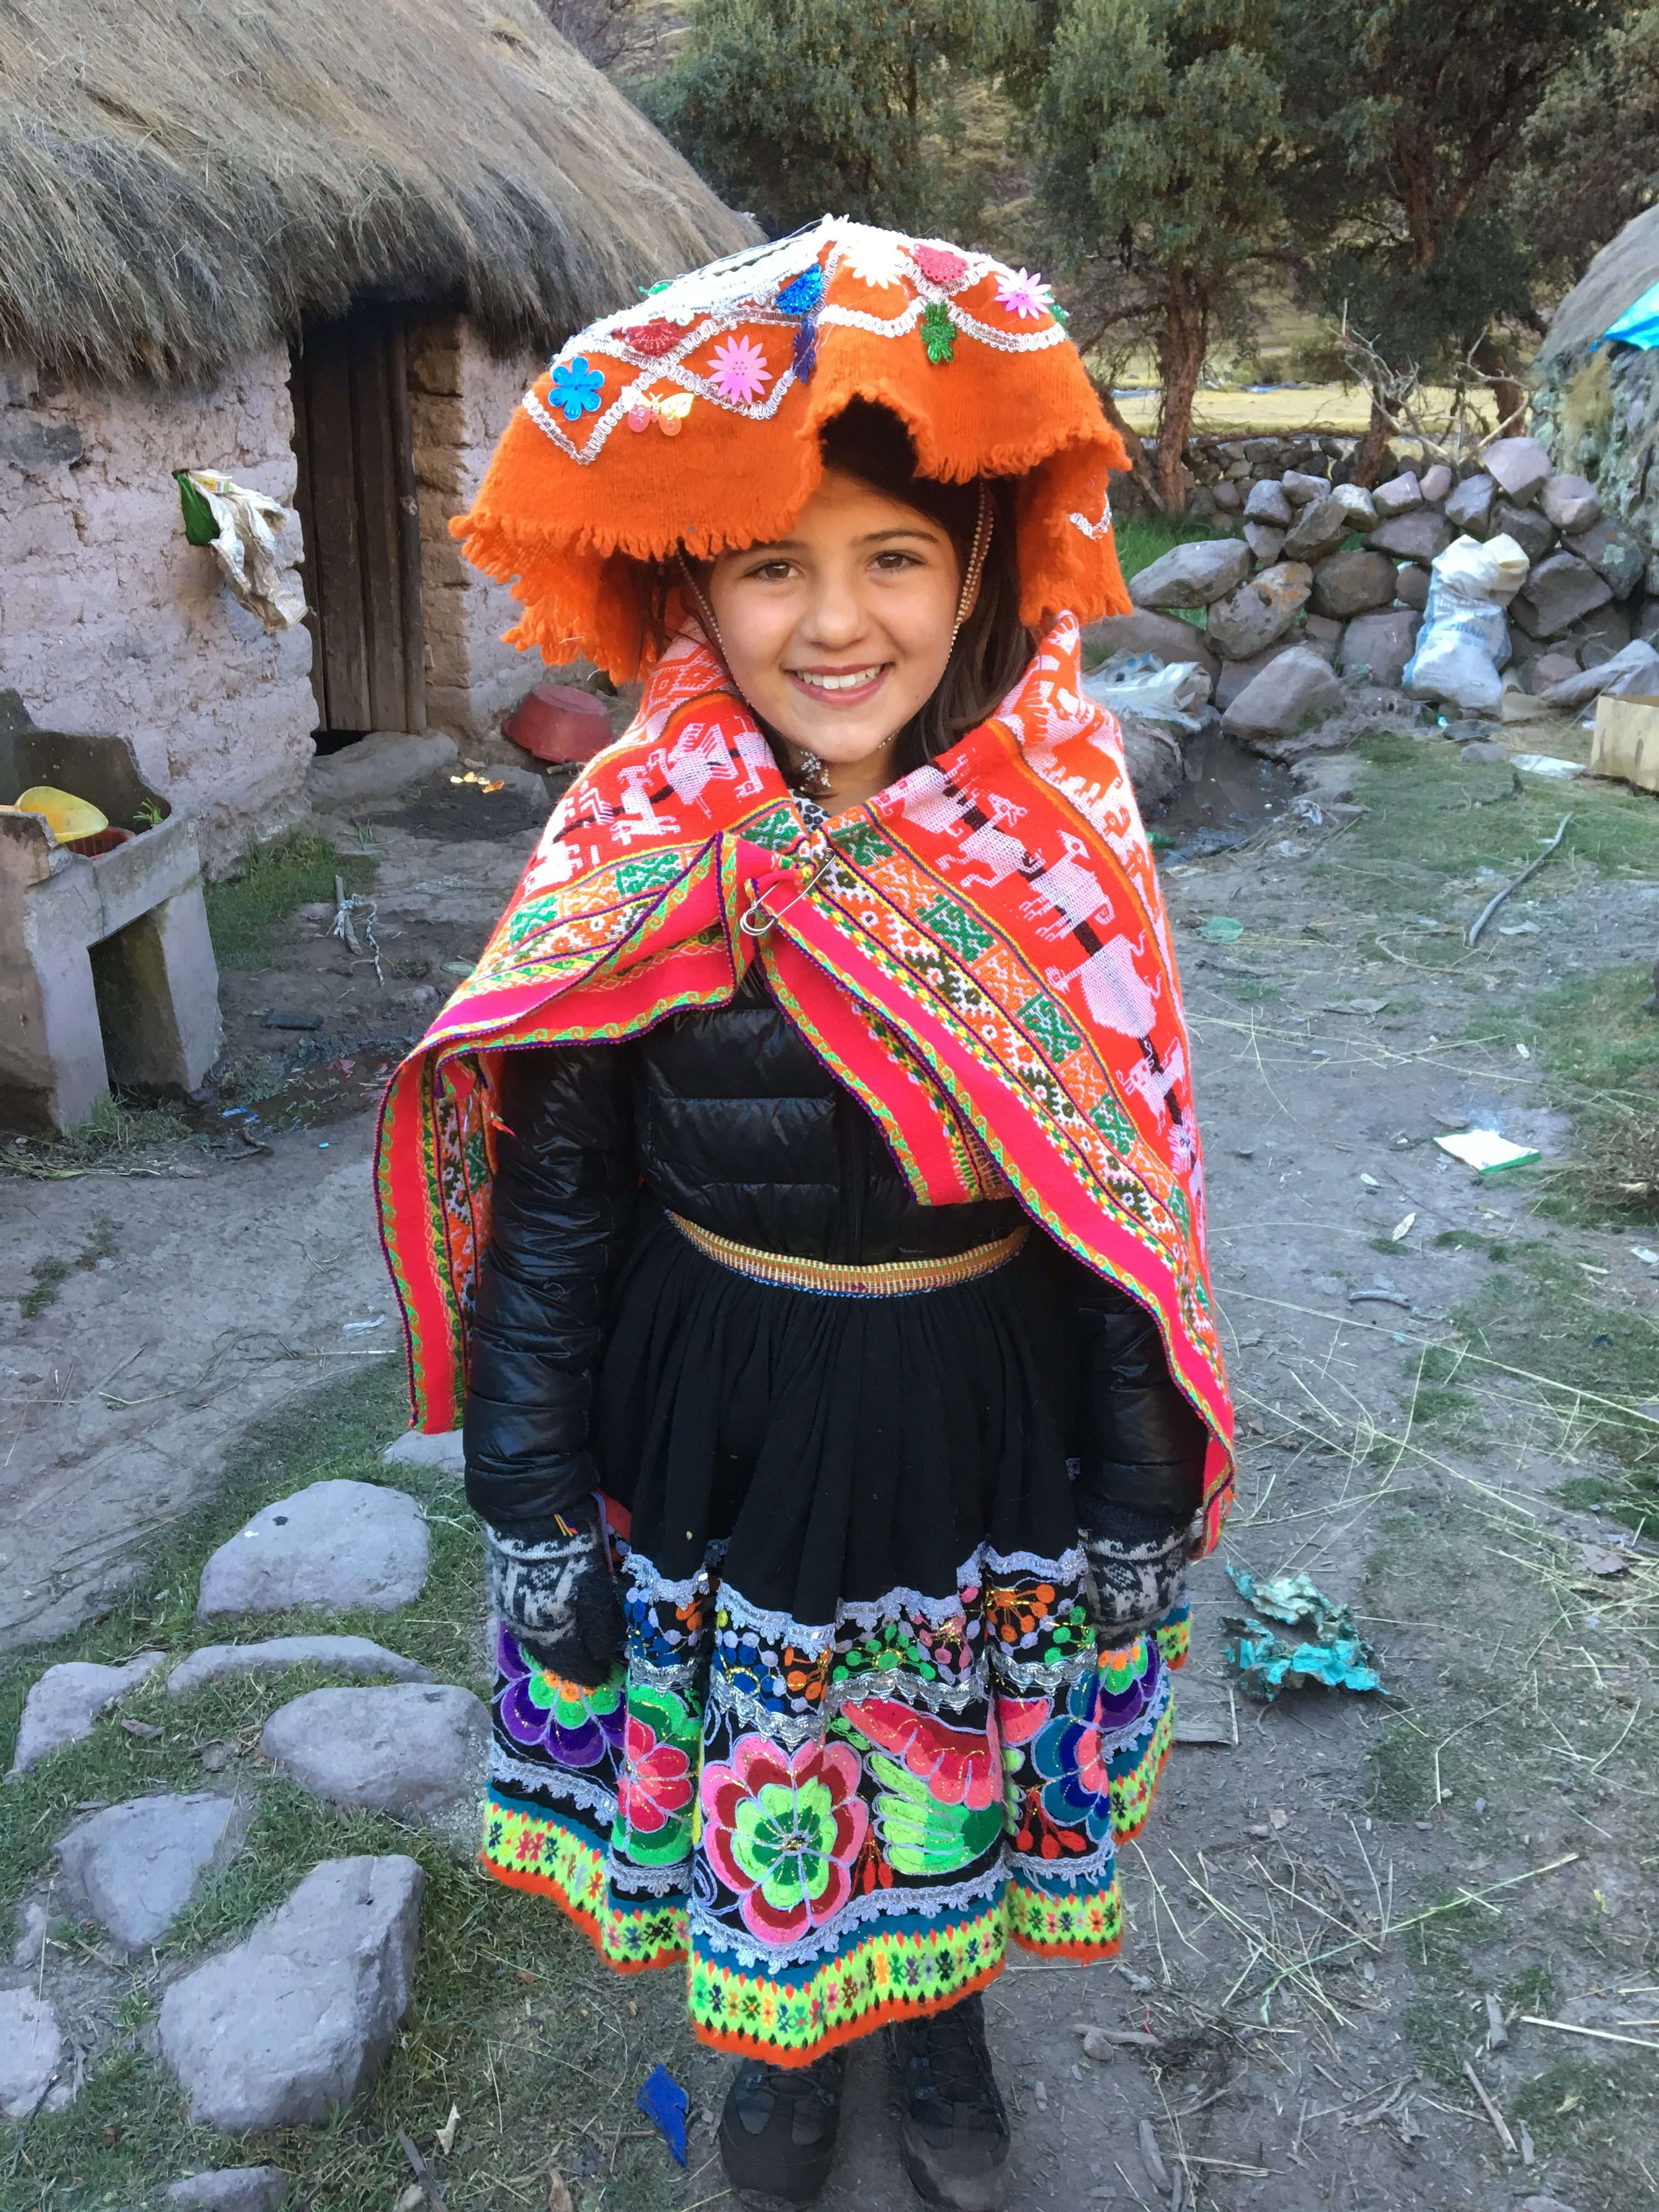 #60 Tiana's story: 18 months living a nomadic life